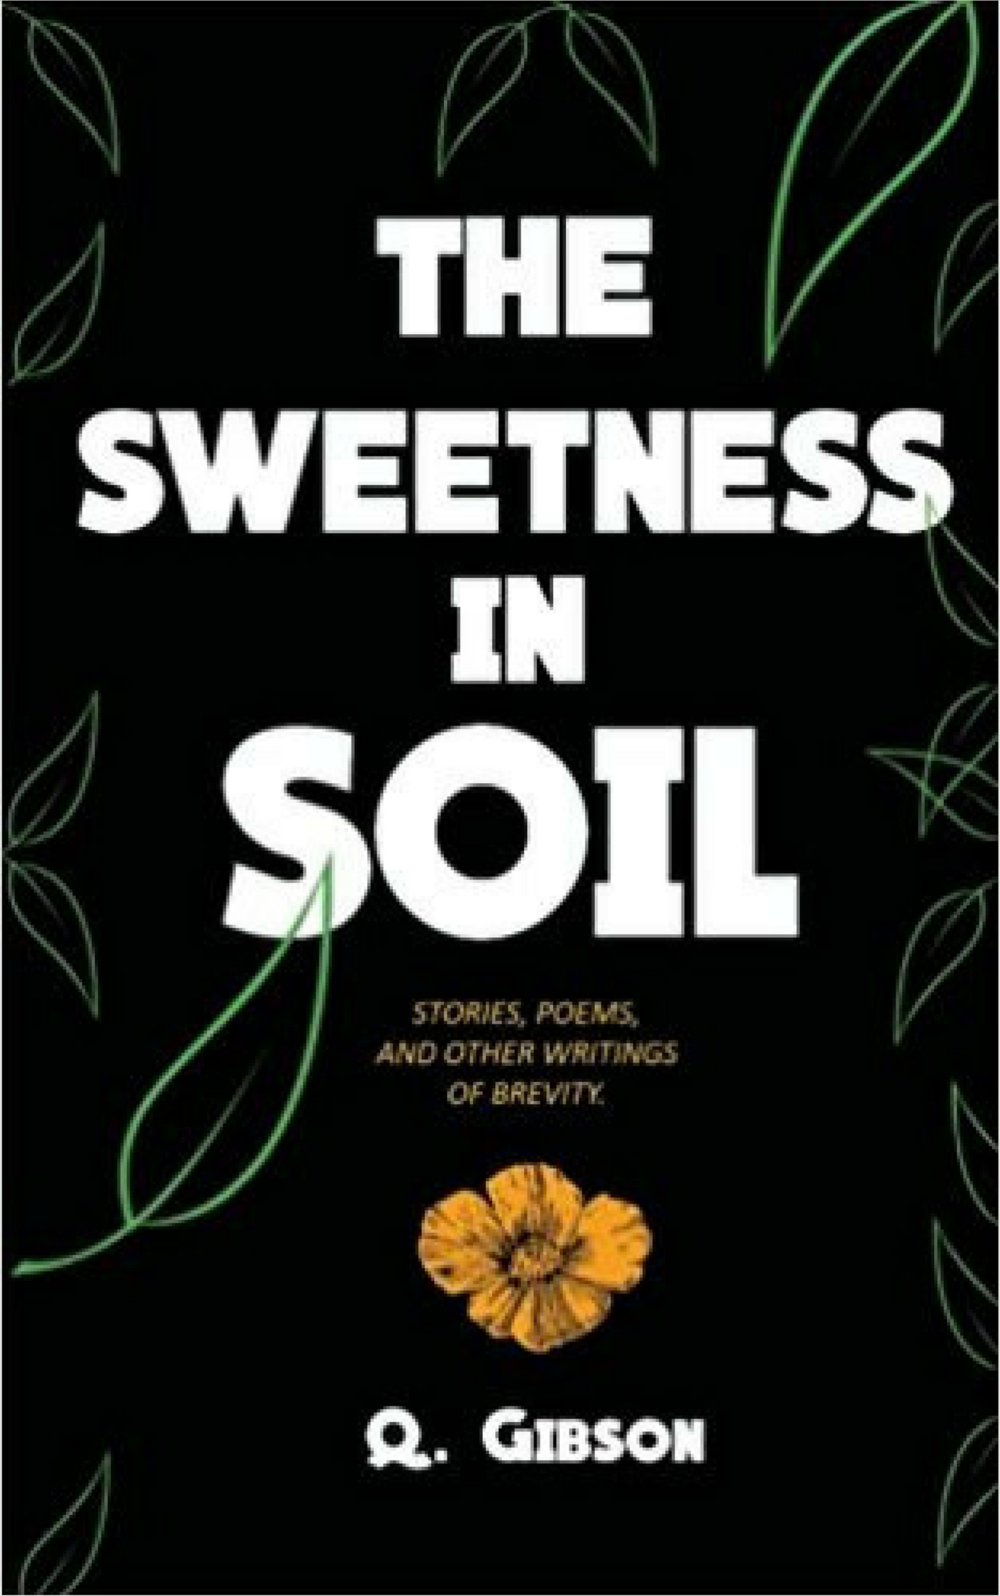 The Sweetness in Soil (Canva).png